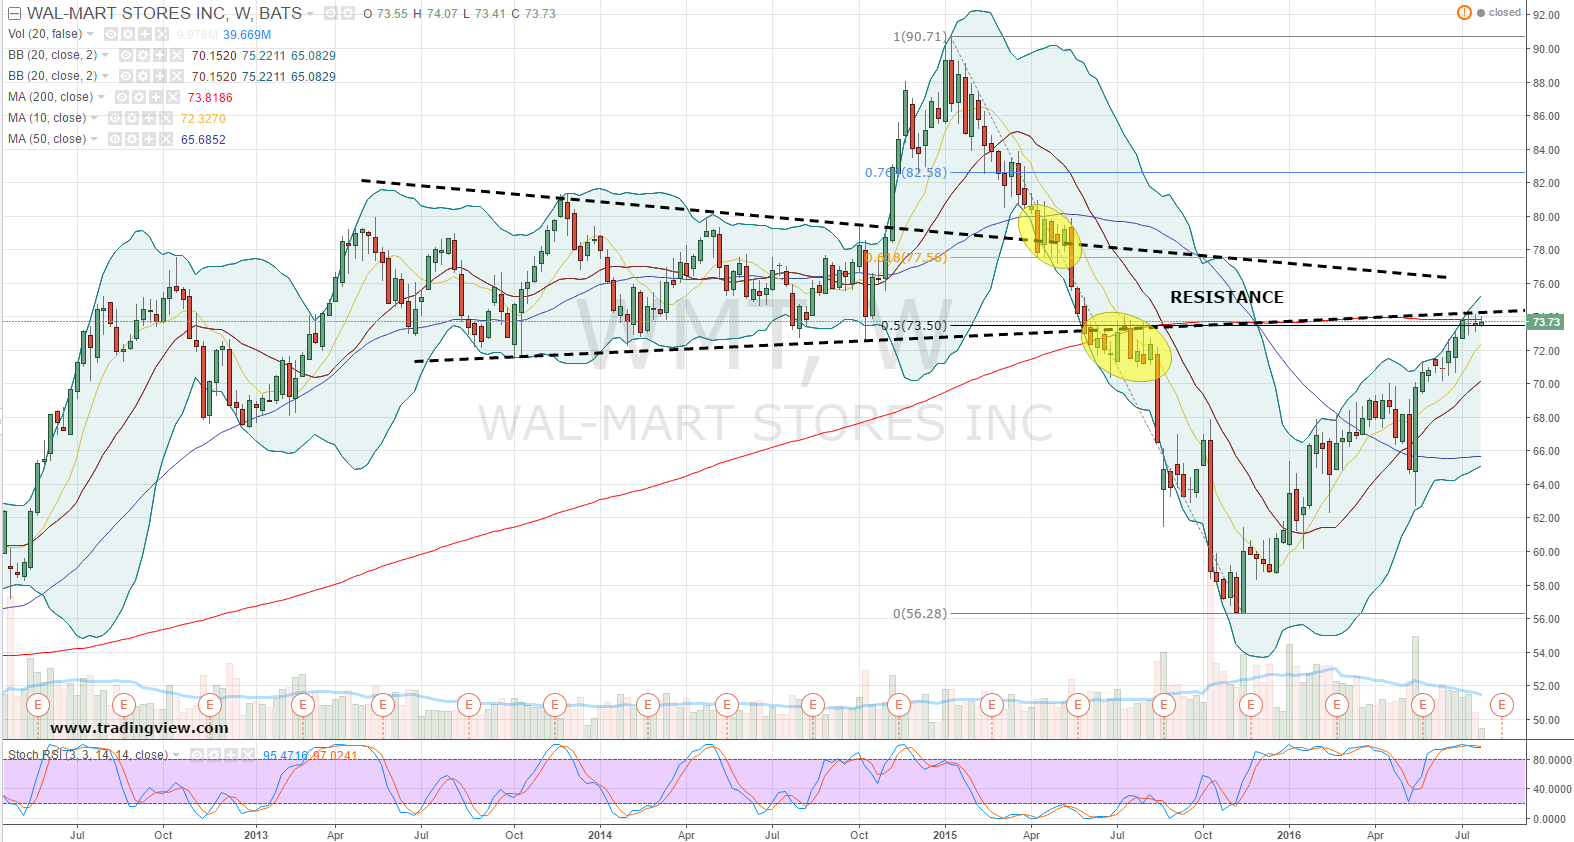 walmart stock market paper This white paper provides a history of walmart's distribution center network in the   the world's most successful companies strategically distribute goods to market   it was a painstaking effort to review 42 years of walmart's public financial.